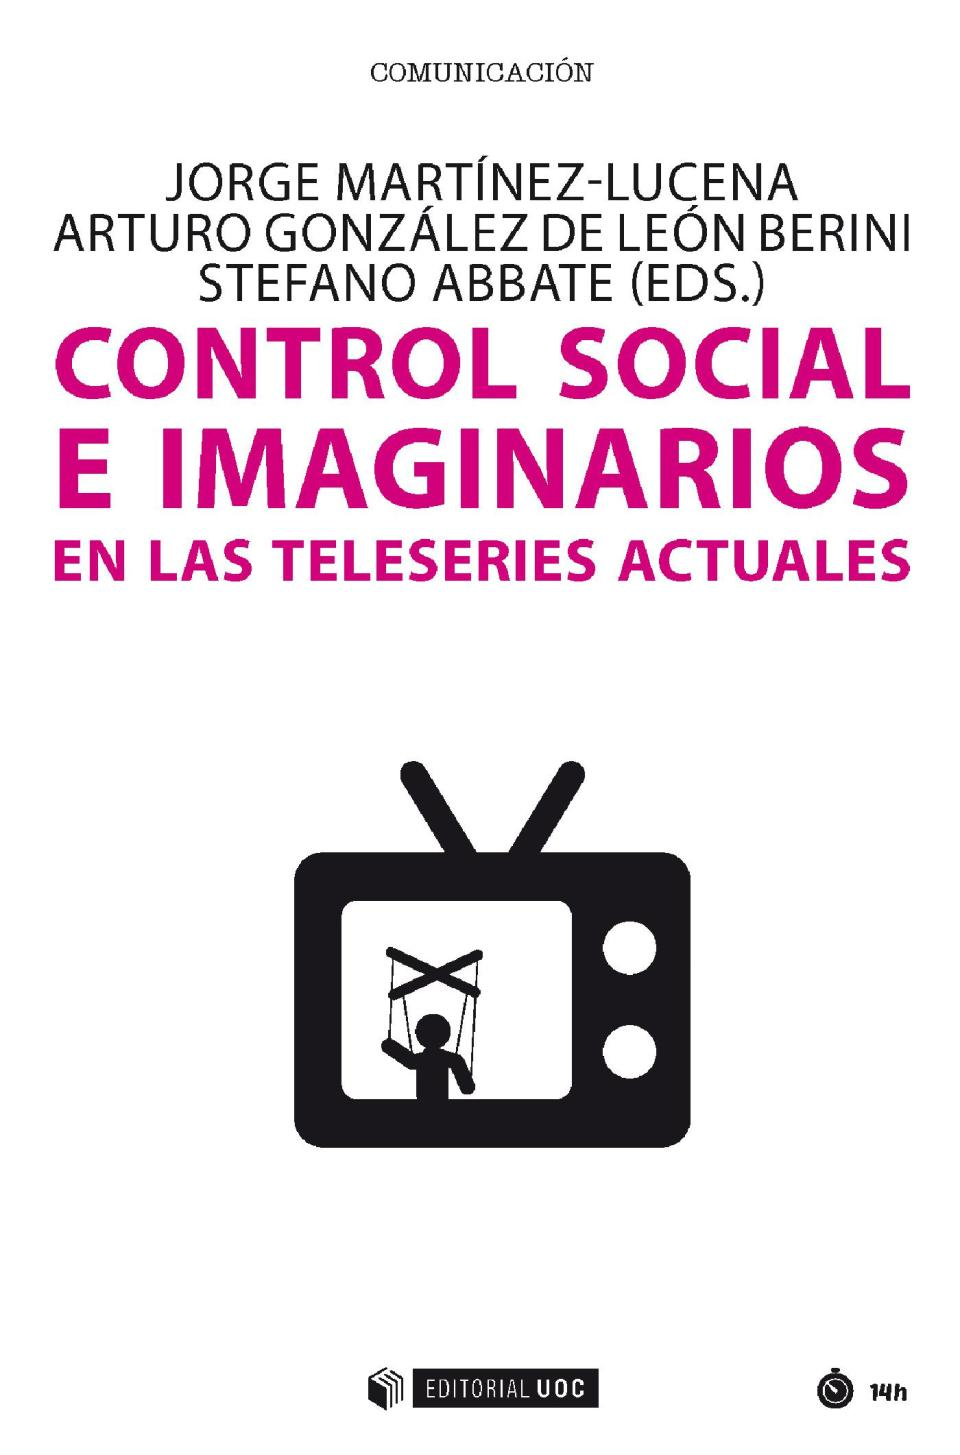 Imaginarios y teleseries